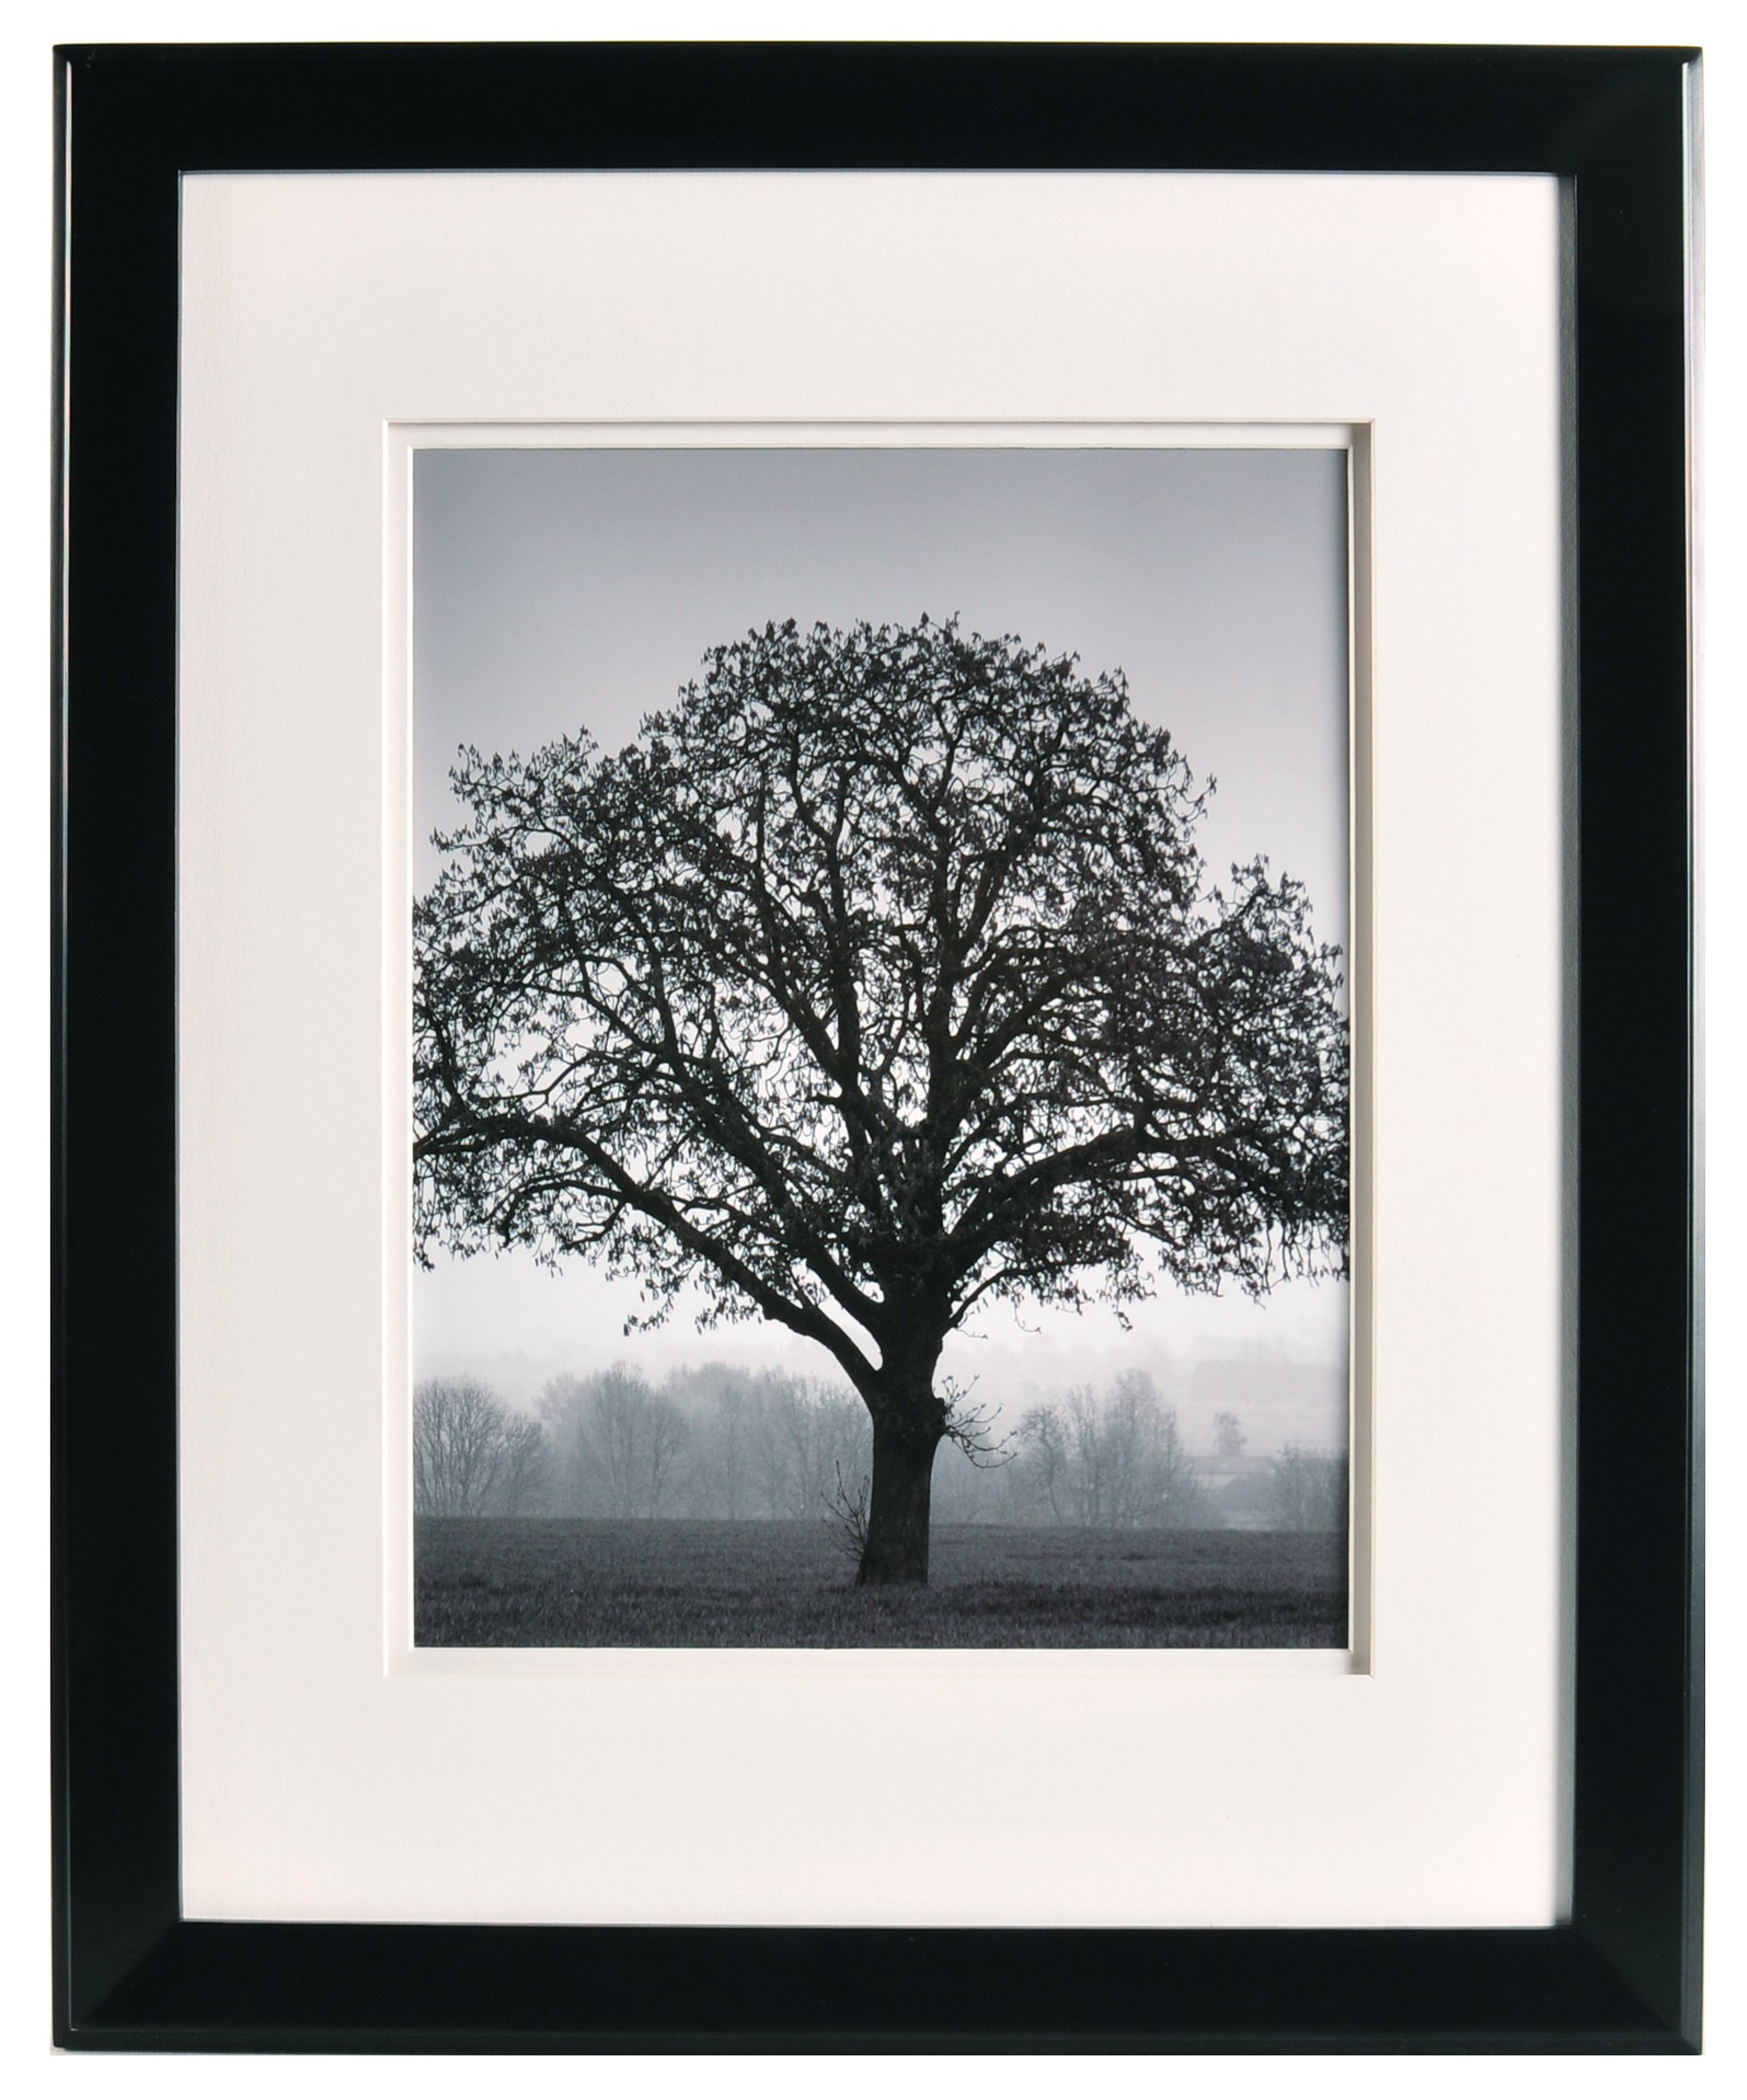 Nielsen Bainbridge Artcare By 16x20 Chelsea Black Museum Quality Archival Frame With Double White Mat For 1x14 Image #RW19CHLMB. Includes: UV Glazed Glass and Anti Aging Liner